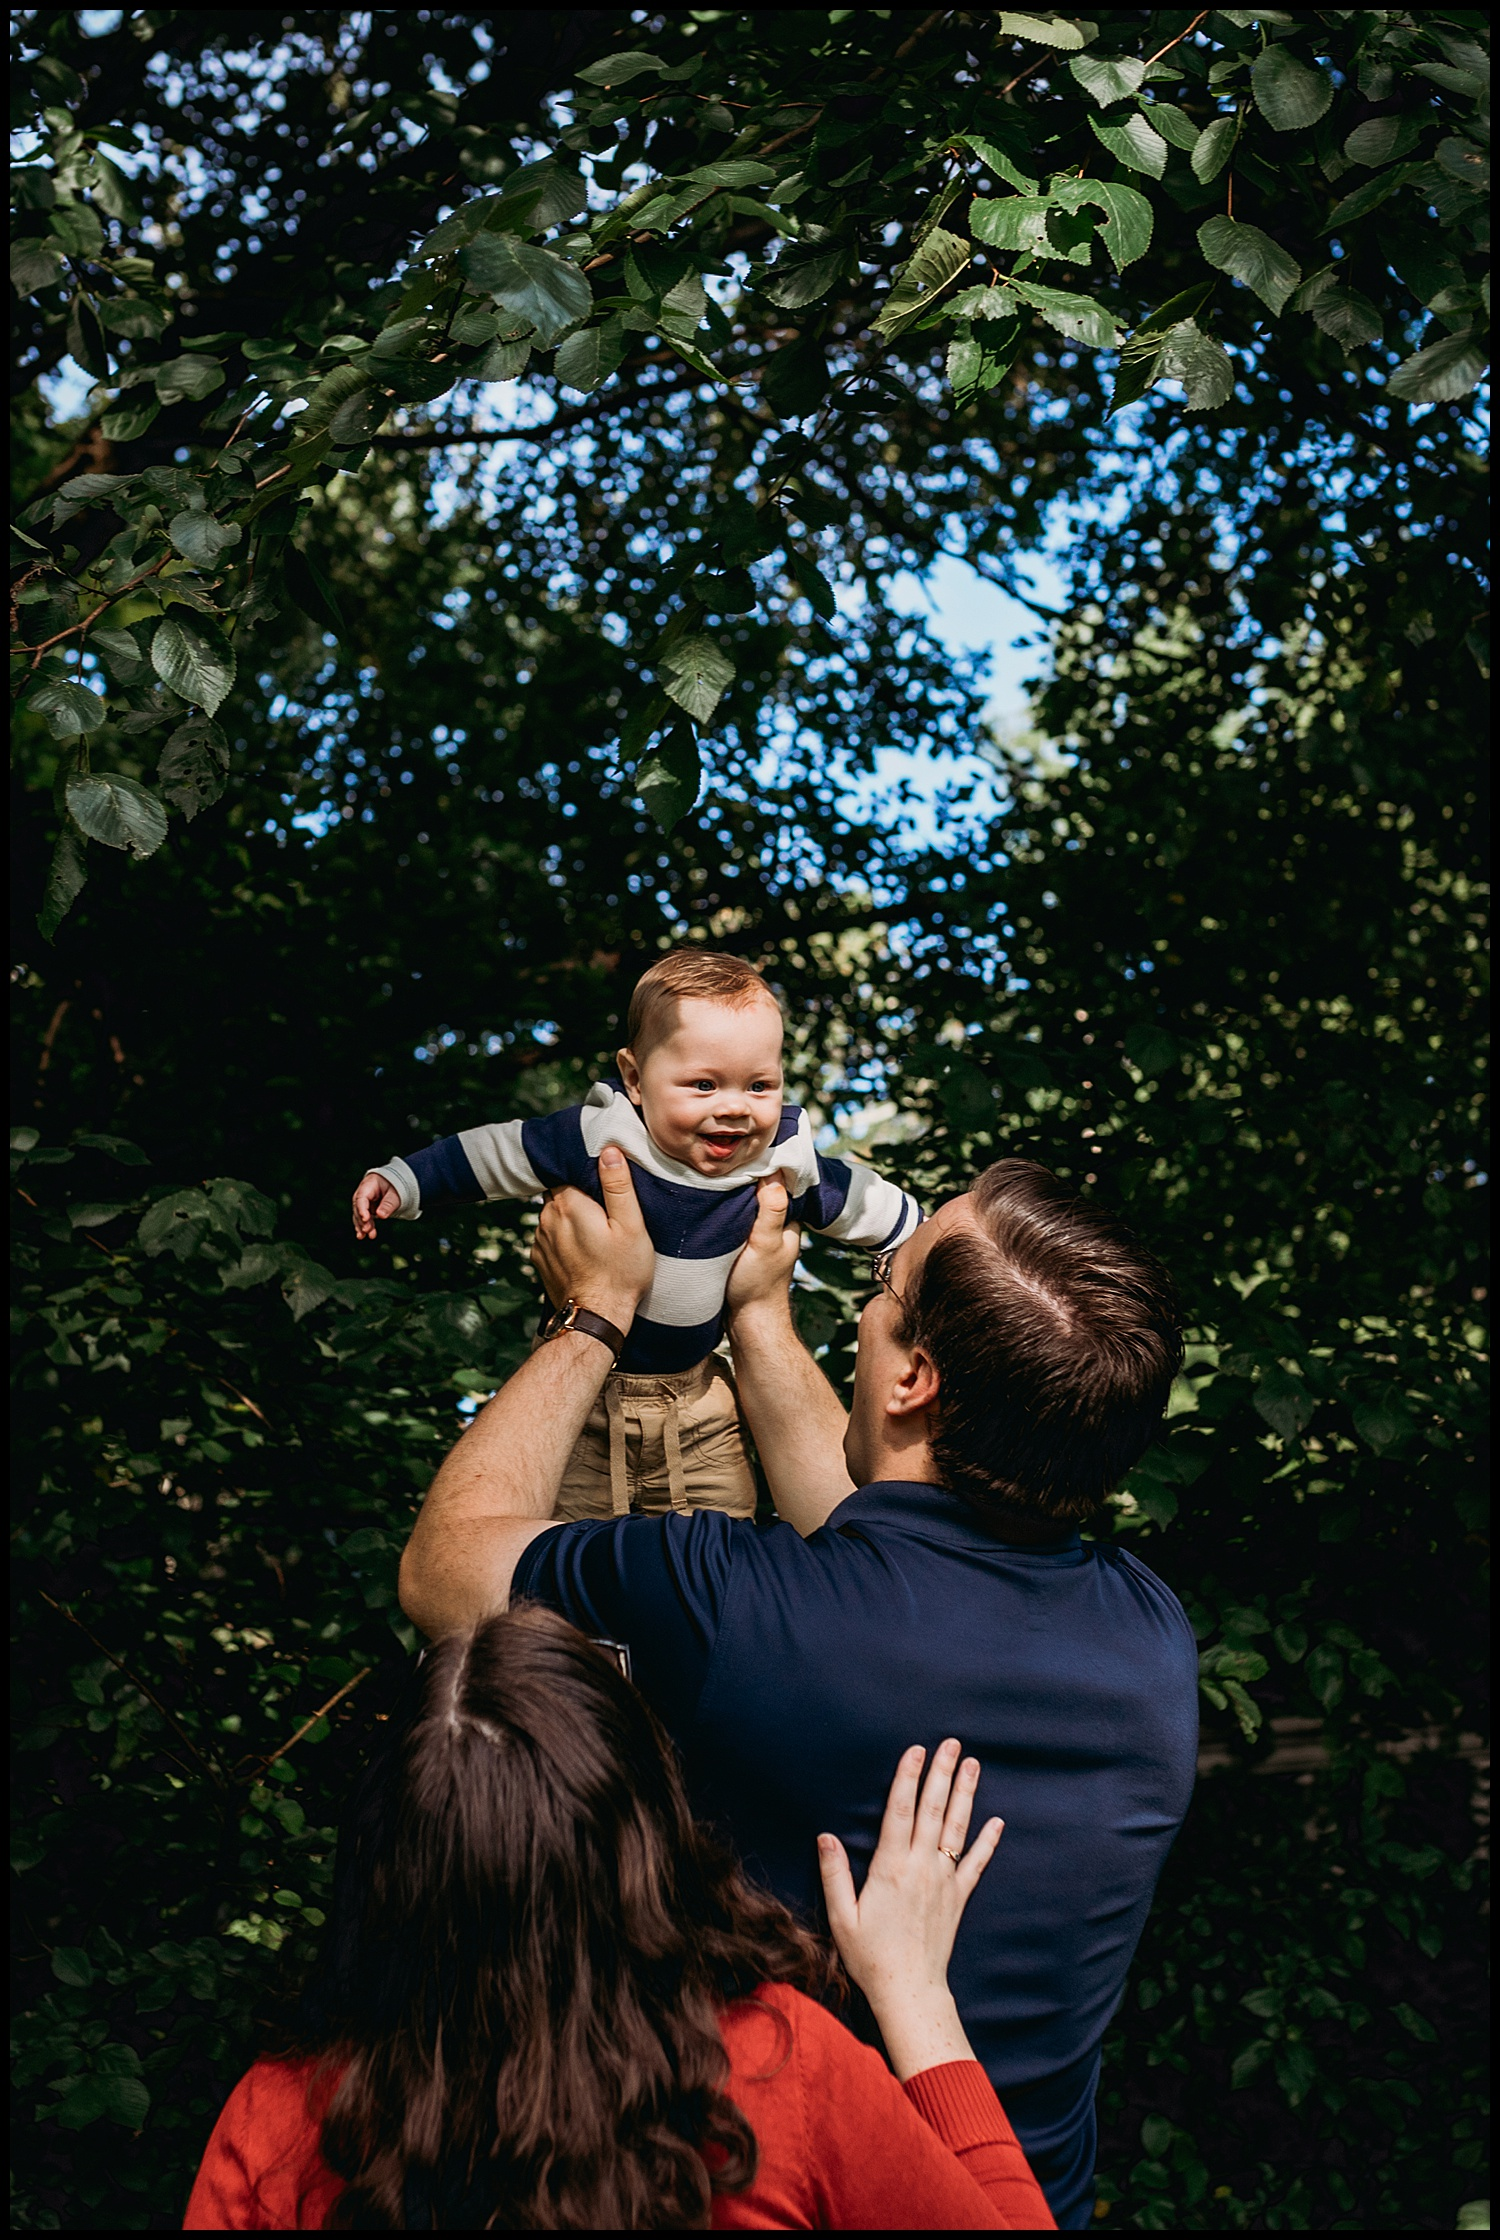 elkins park family photographer _ desiree hoelzle photography_0171.jpg